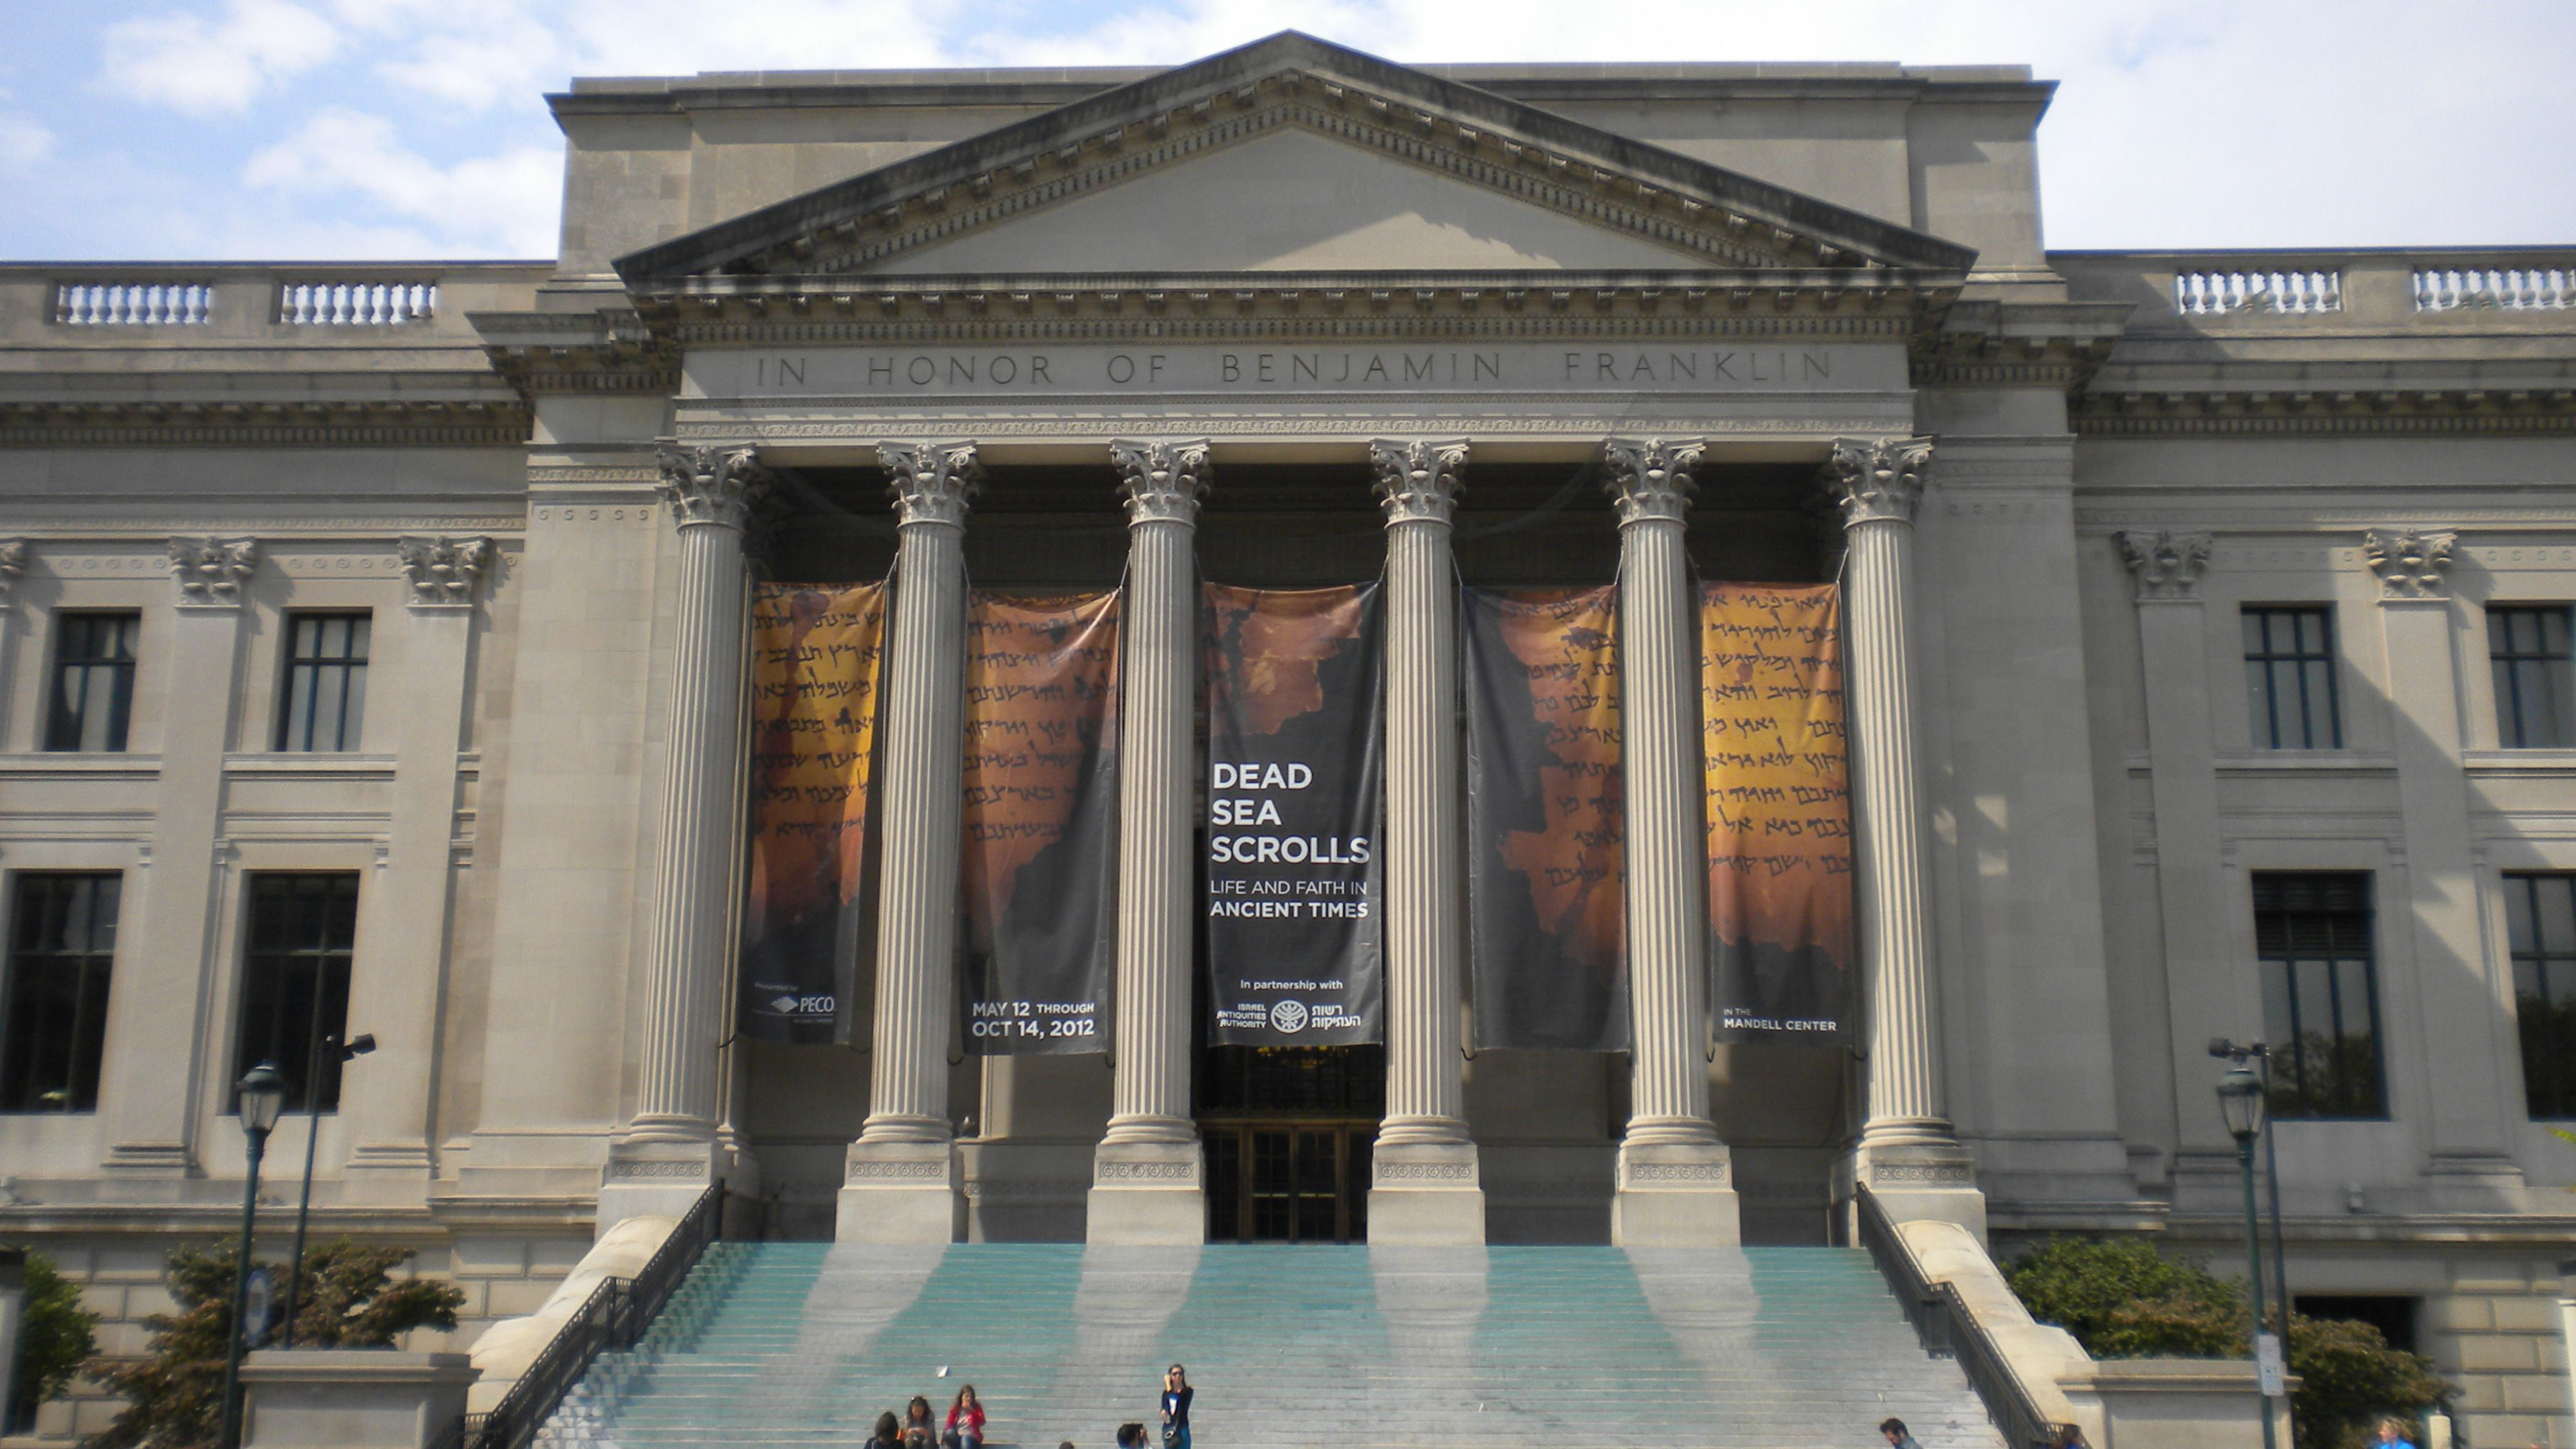 The Franklin Institute Is A Science Museum And Center Of